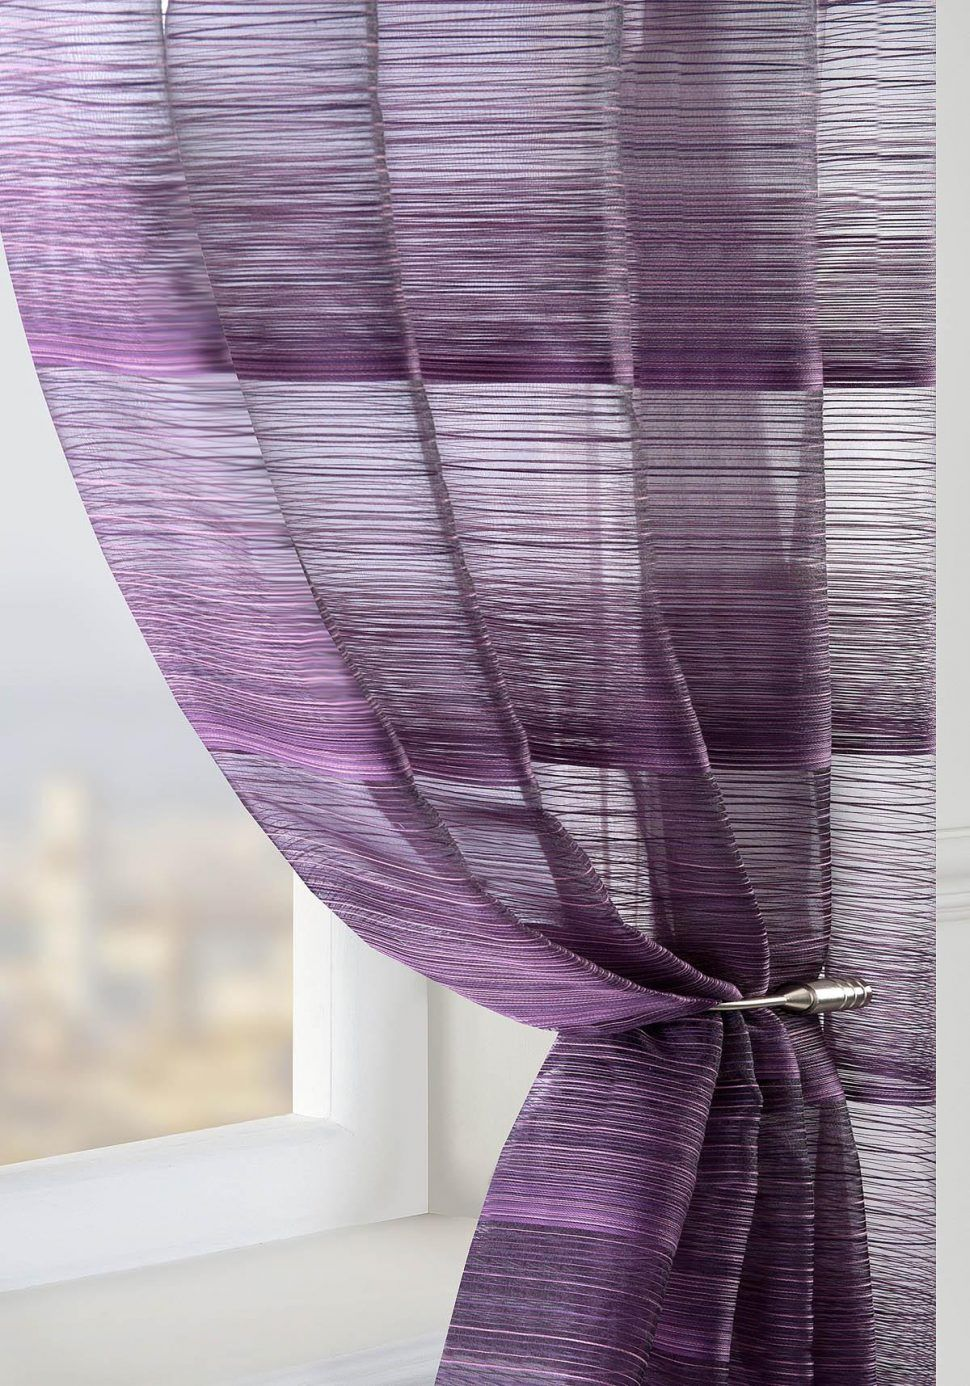 Bedroom Ideas Amazing Childrens Bedroom Ideas Aubergine Curtains Girls Rooms Baby Girl Bedroom Themes Lilac Curta Voile Curtains Purple Curtains Panel Curtains